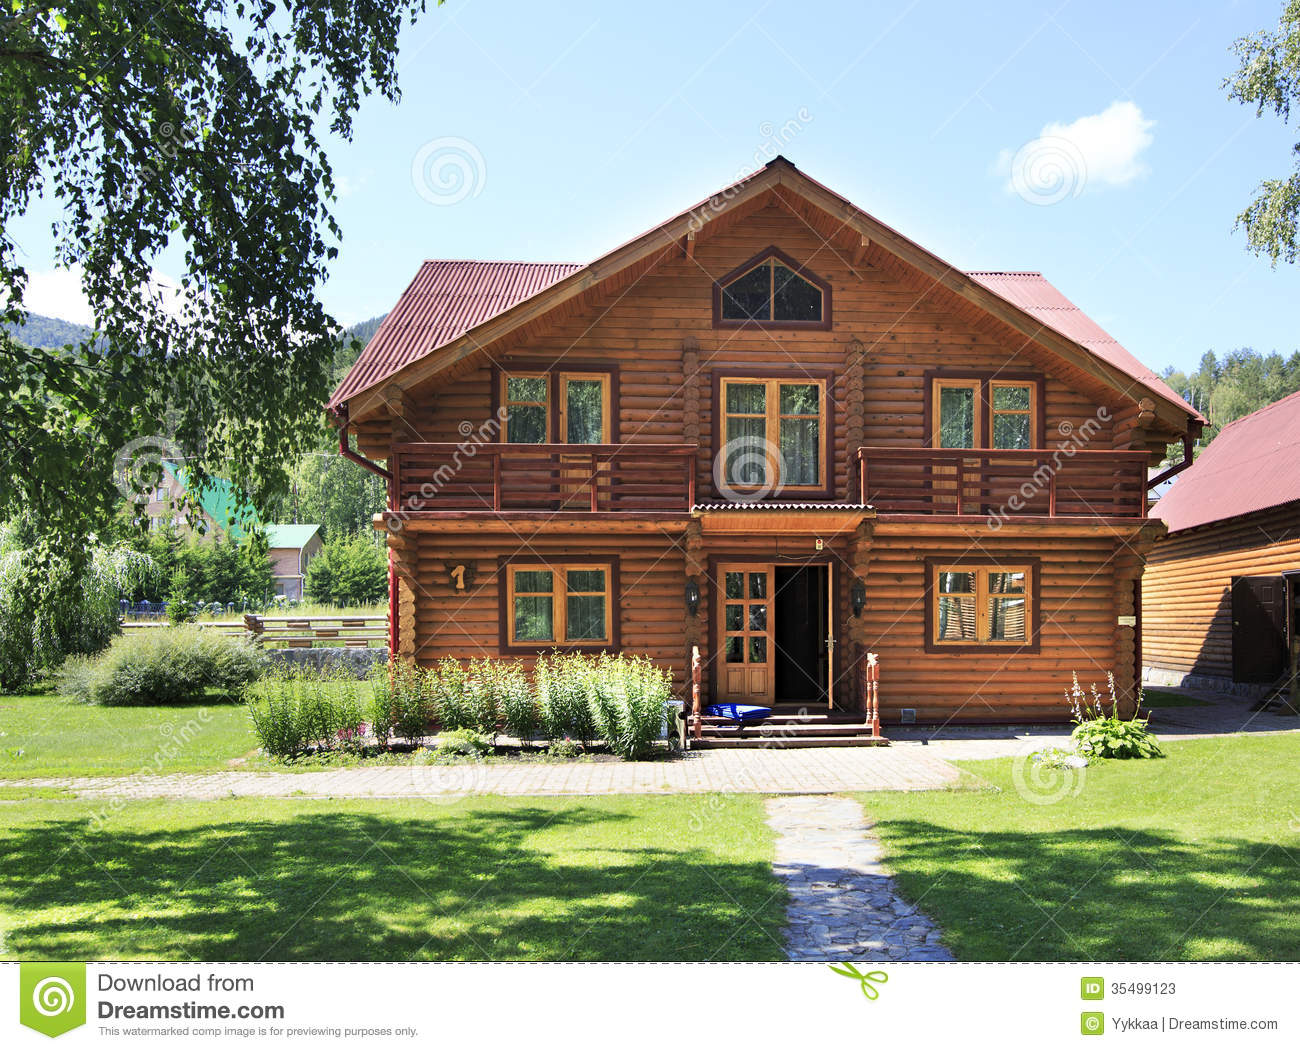 Bella casa di legno nelle montagne altai immagine stock immagine 35499123 Homes with lots of beautiful natural wood